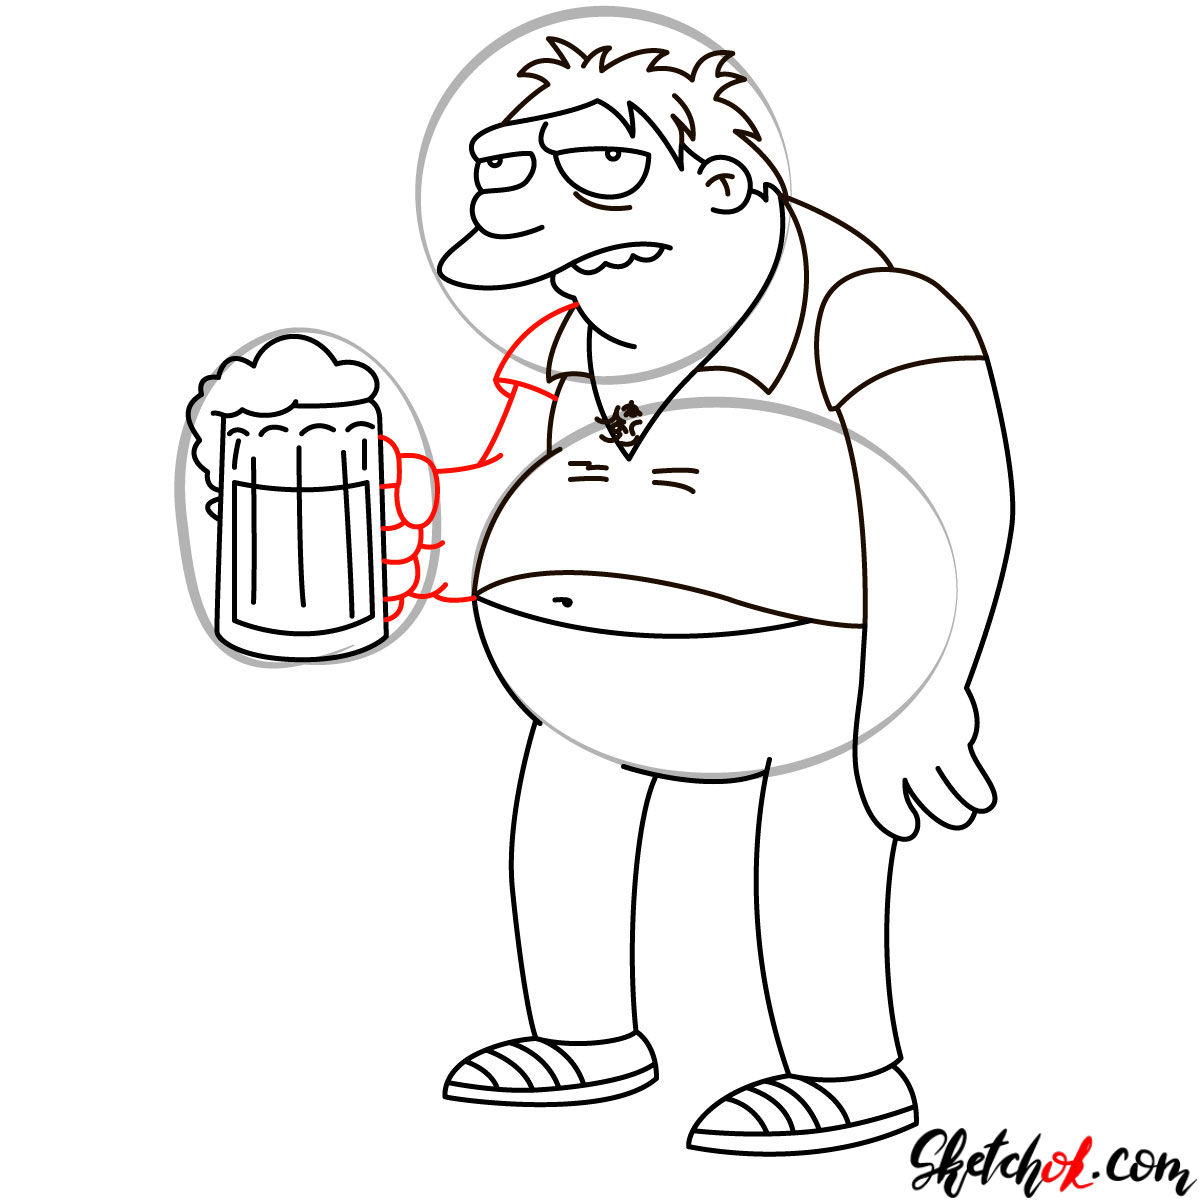 How to draw Barney with a cup of beer - step 12